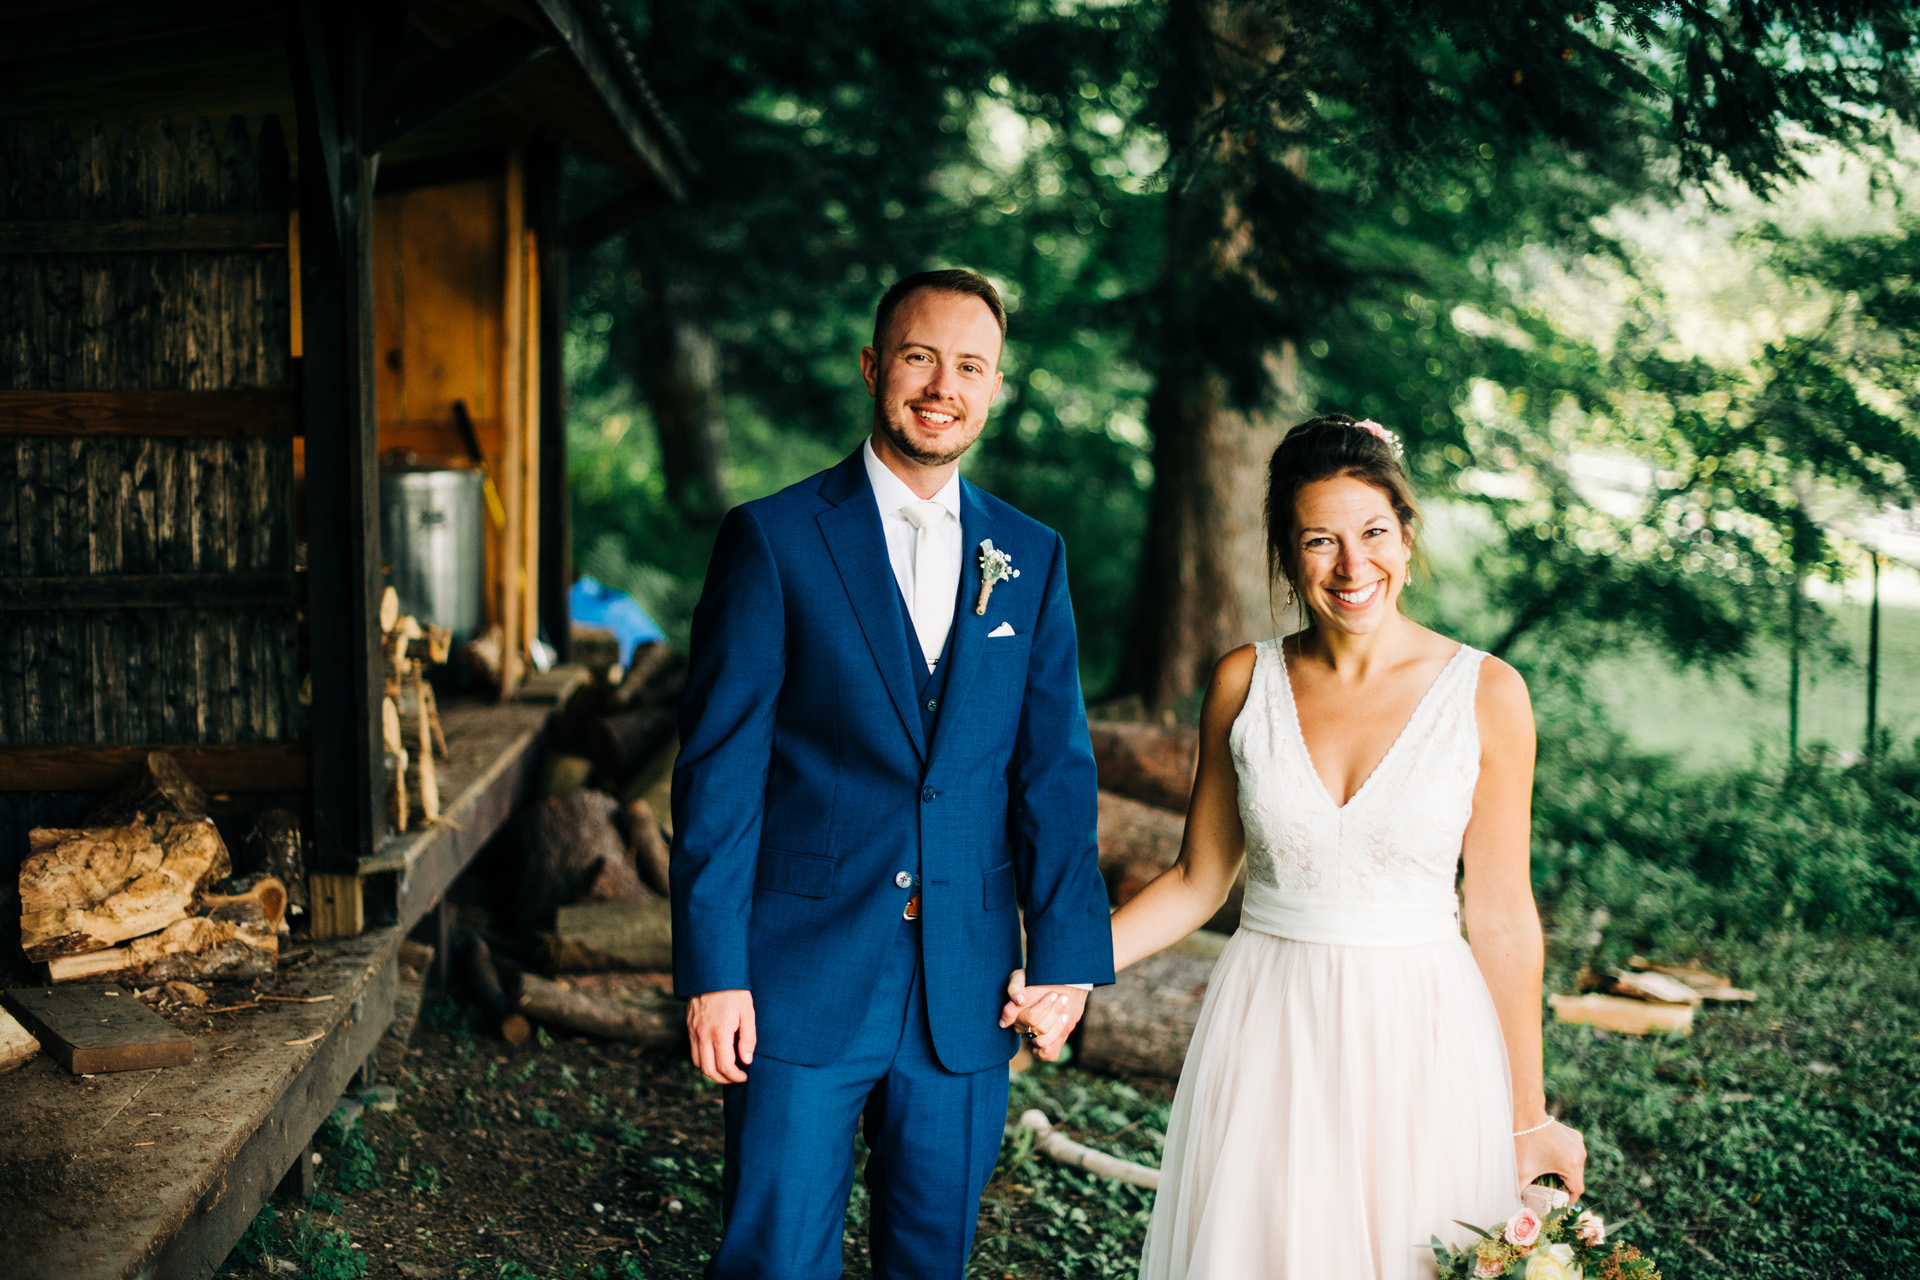 west-mountain-inn-wedding-photographer-24